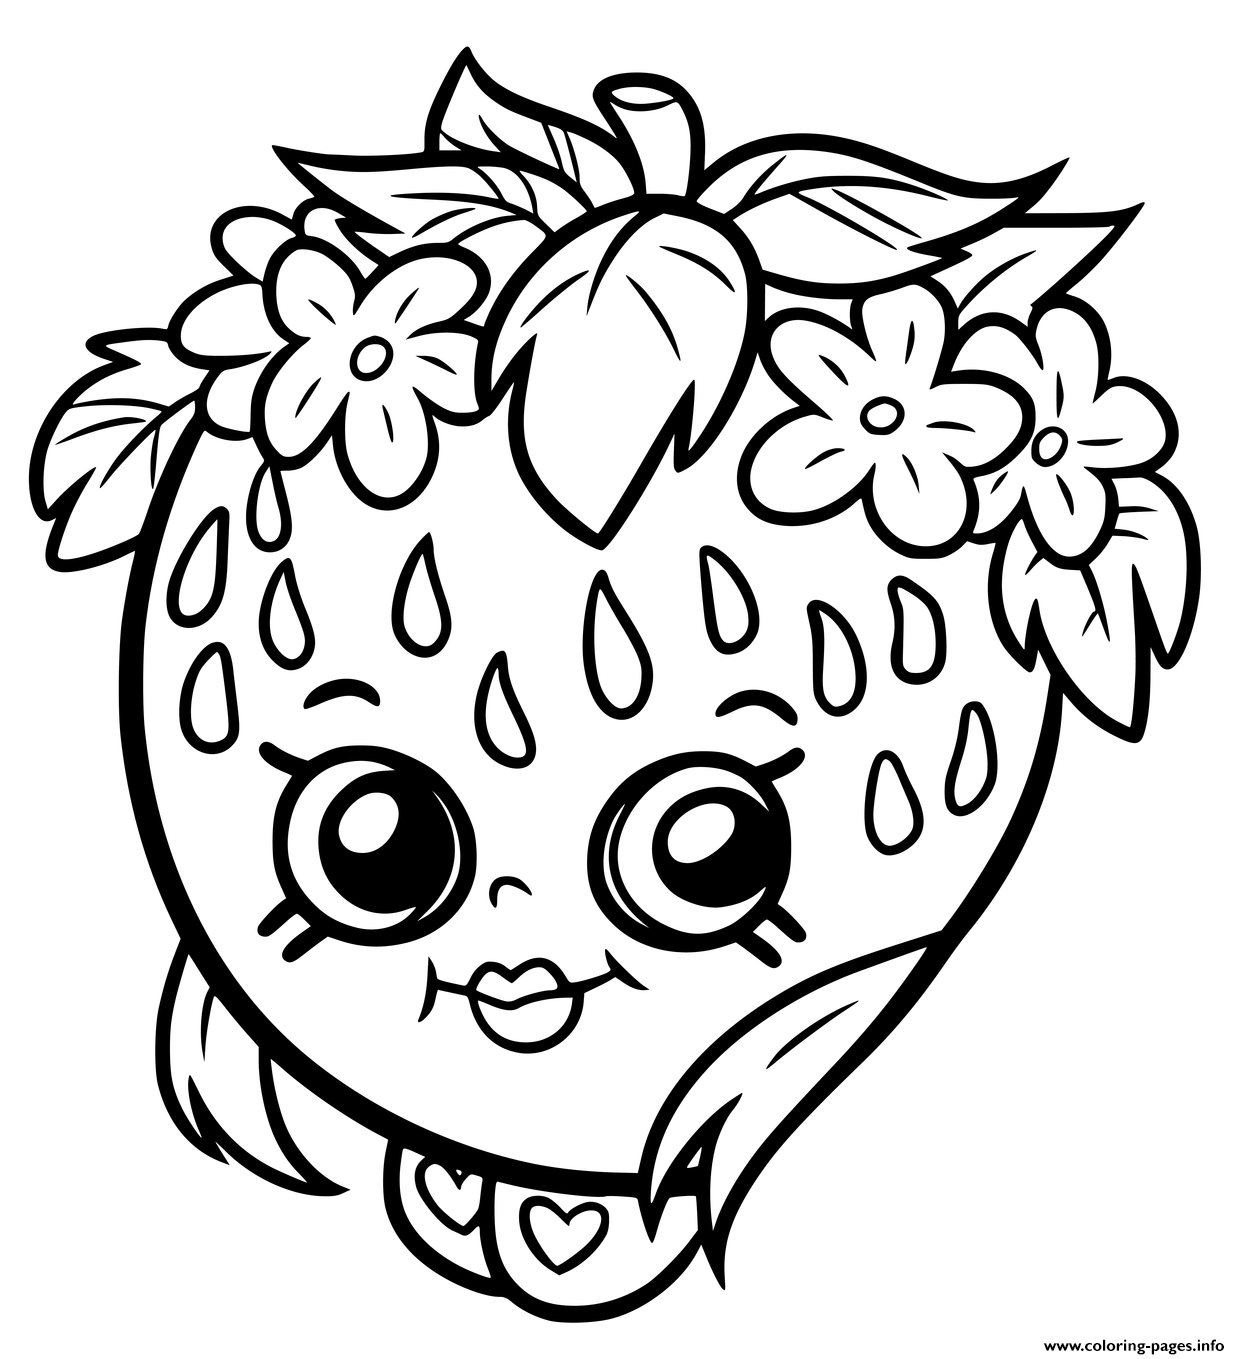 shopkin pictures that you can print 40 printable shopkins coloring pages shopkin can you print pictures that